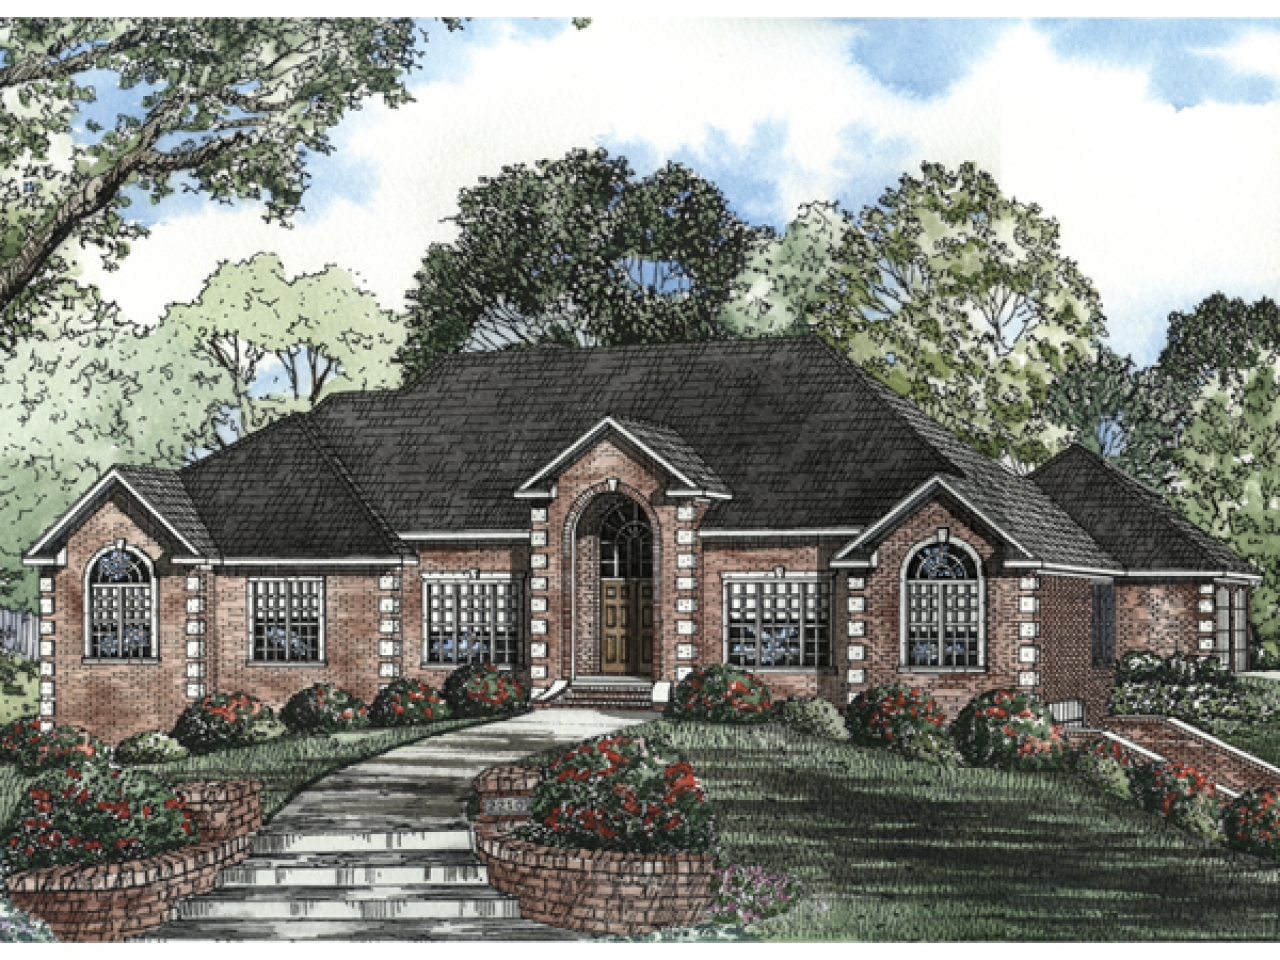 Red brick ranch style house